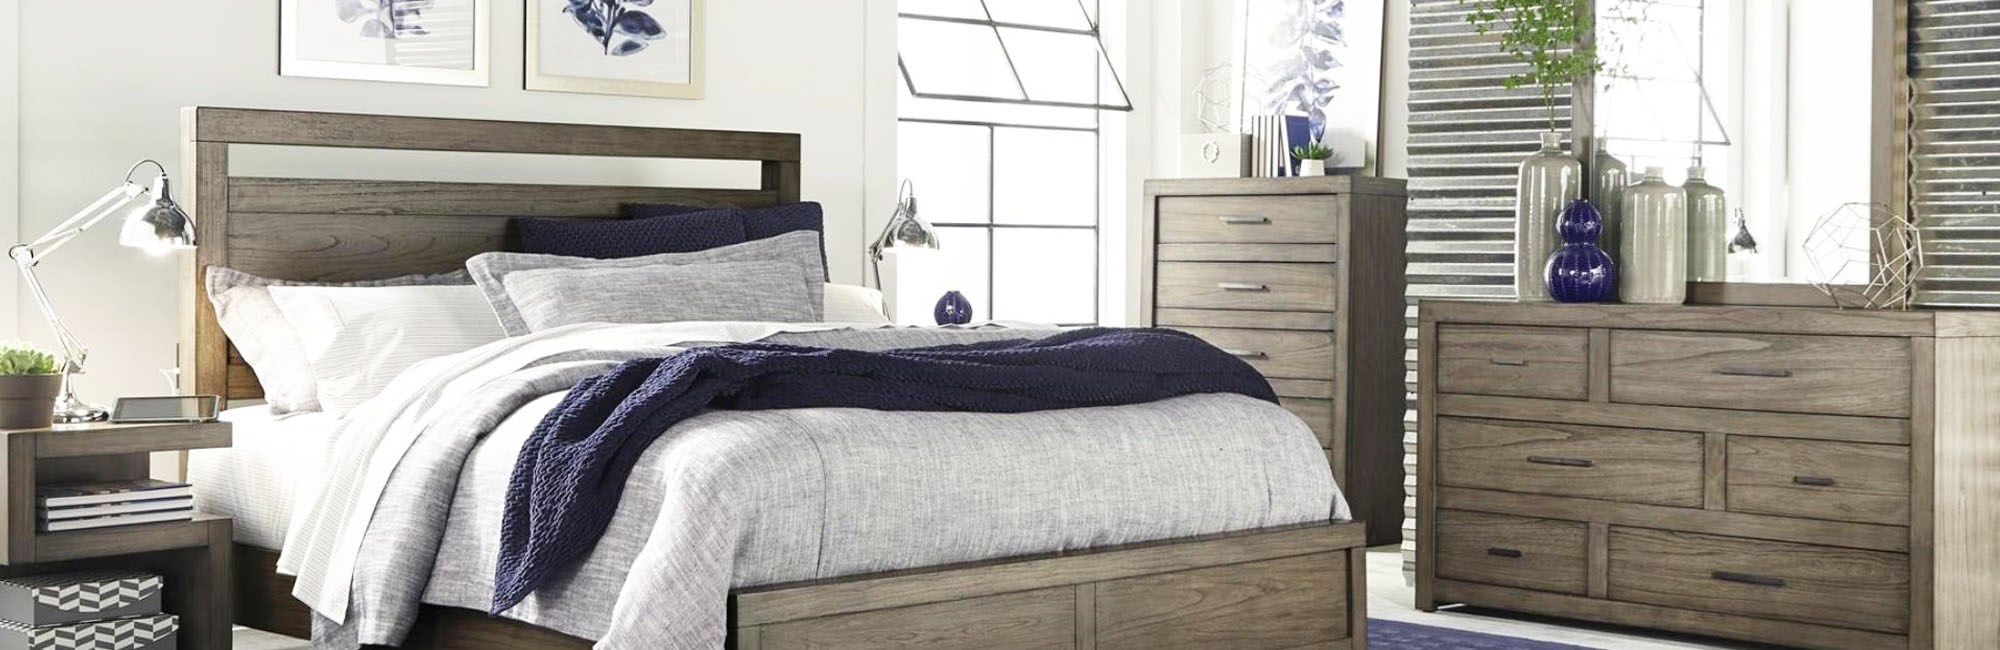 Superb Bedroom Furniture